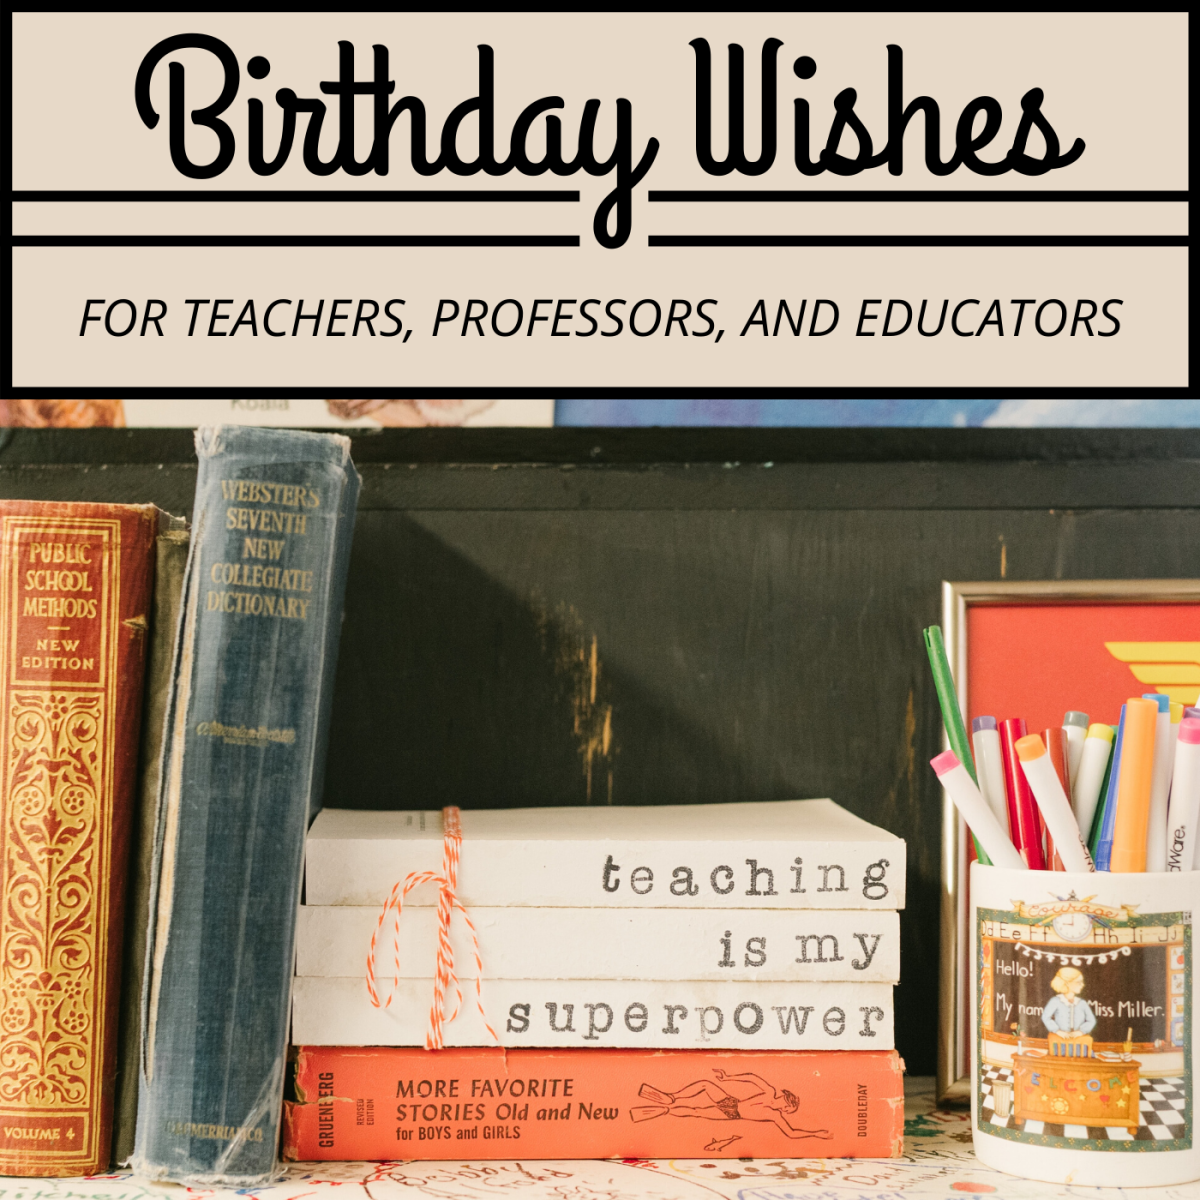 Example Birthday Wishes and Messages for Teachers and Educators